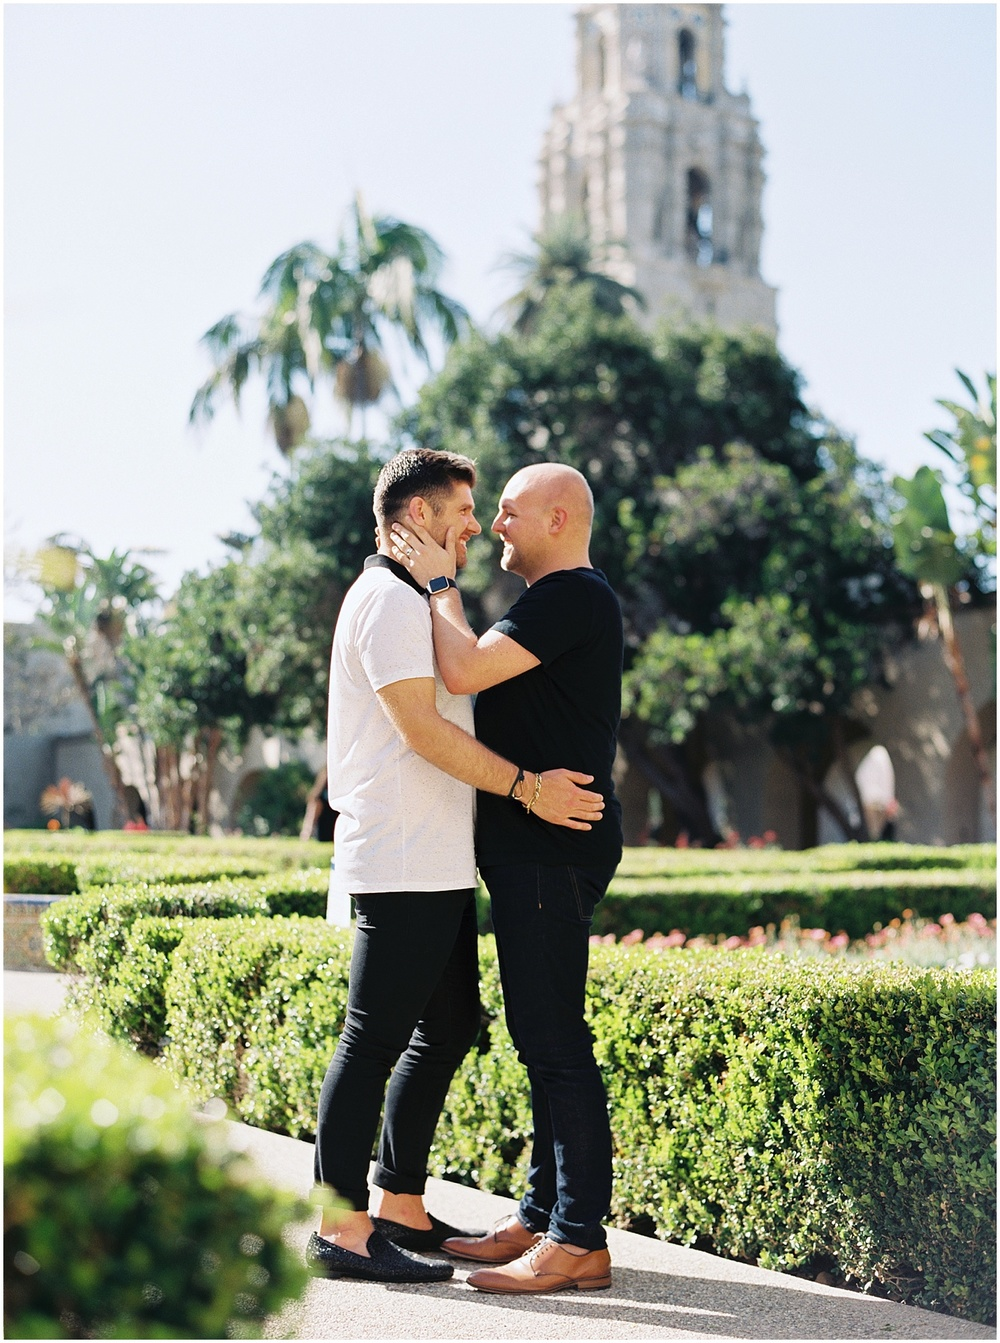 San_Francisco_Same_Sex_Wedding_photographer-02.jpg